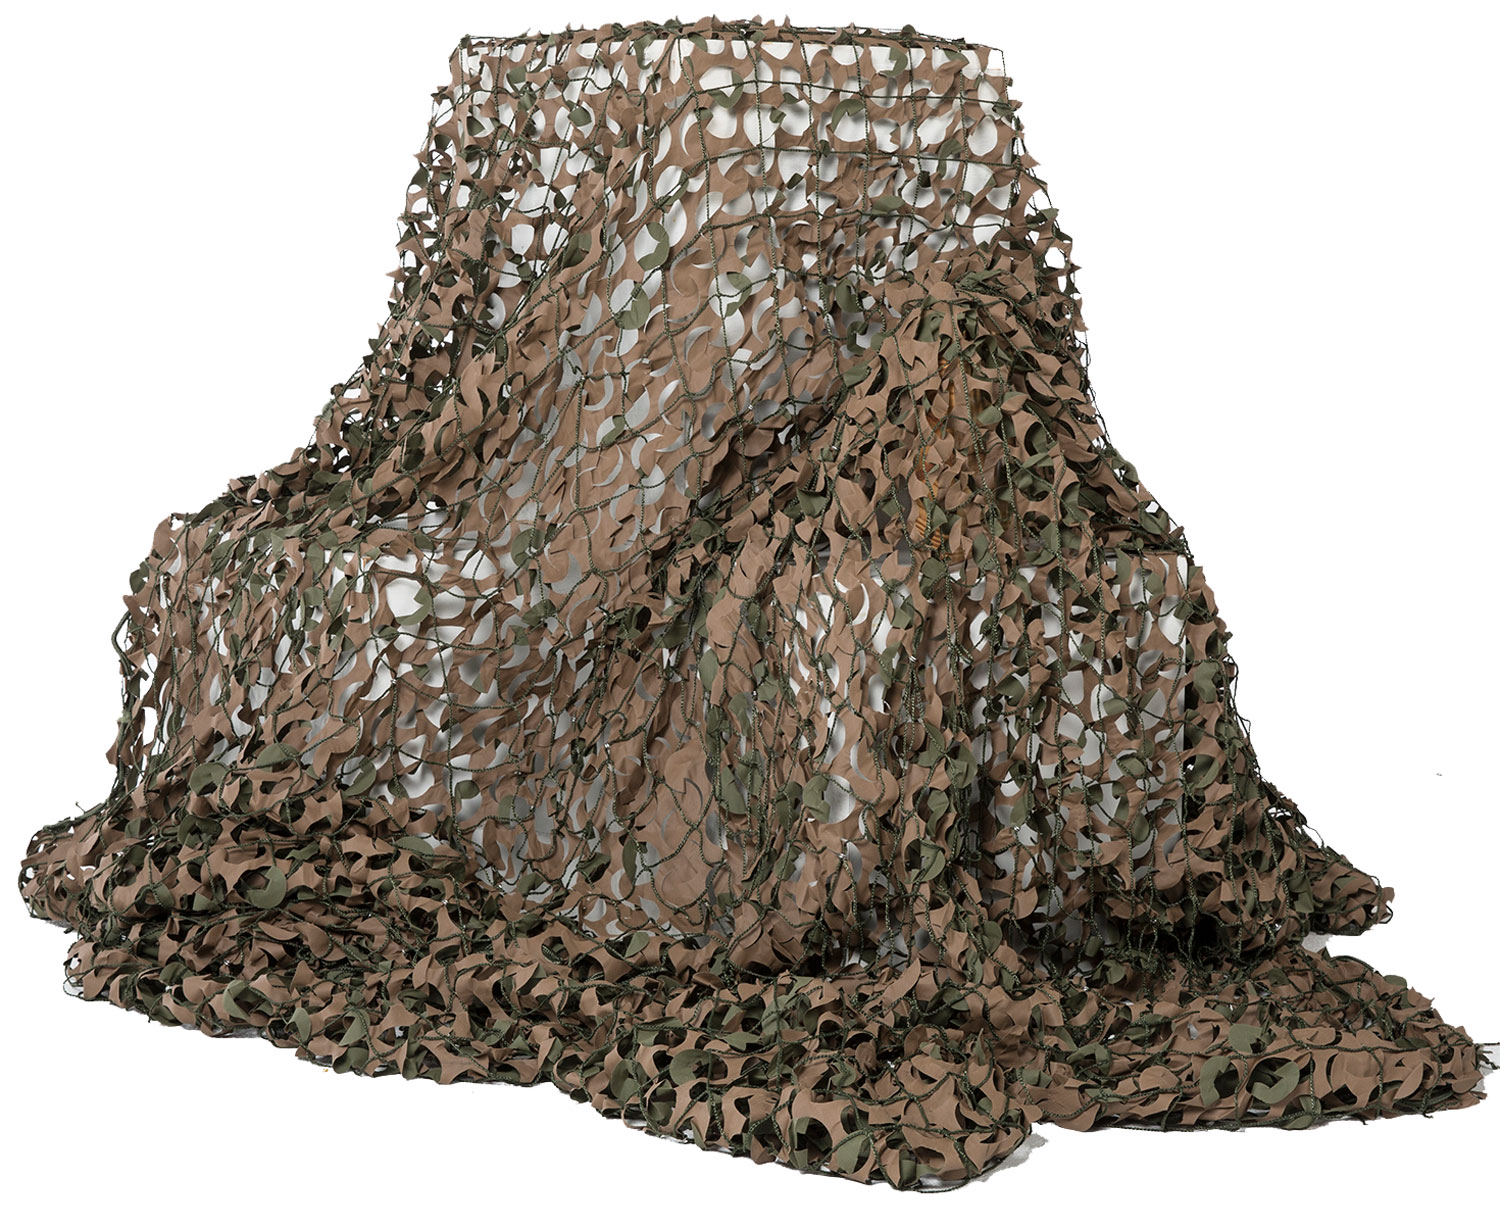 Camo Unlimited MS01B CamoSystems Camouflage Netting Wood